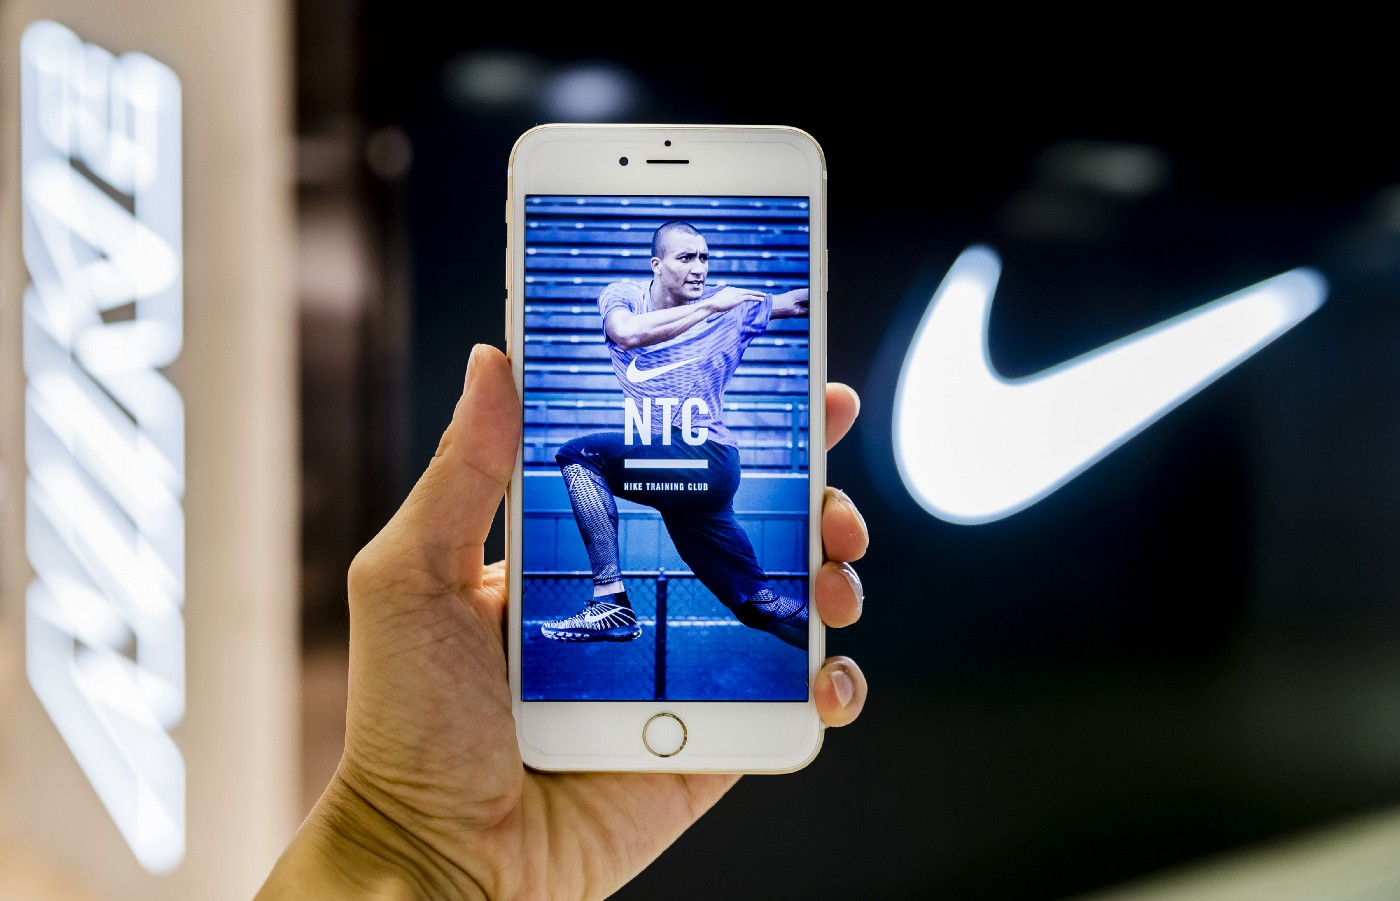 The Nike Training Club (NTC) app screen is displayed on a phone, held up against the Nike swoosh logo.